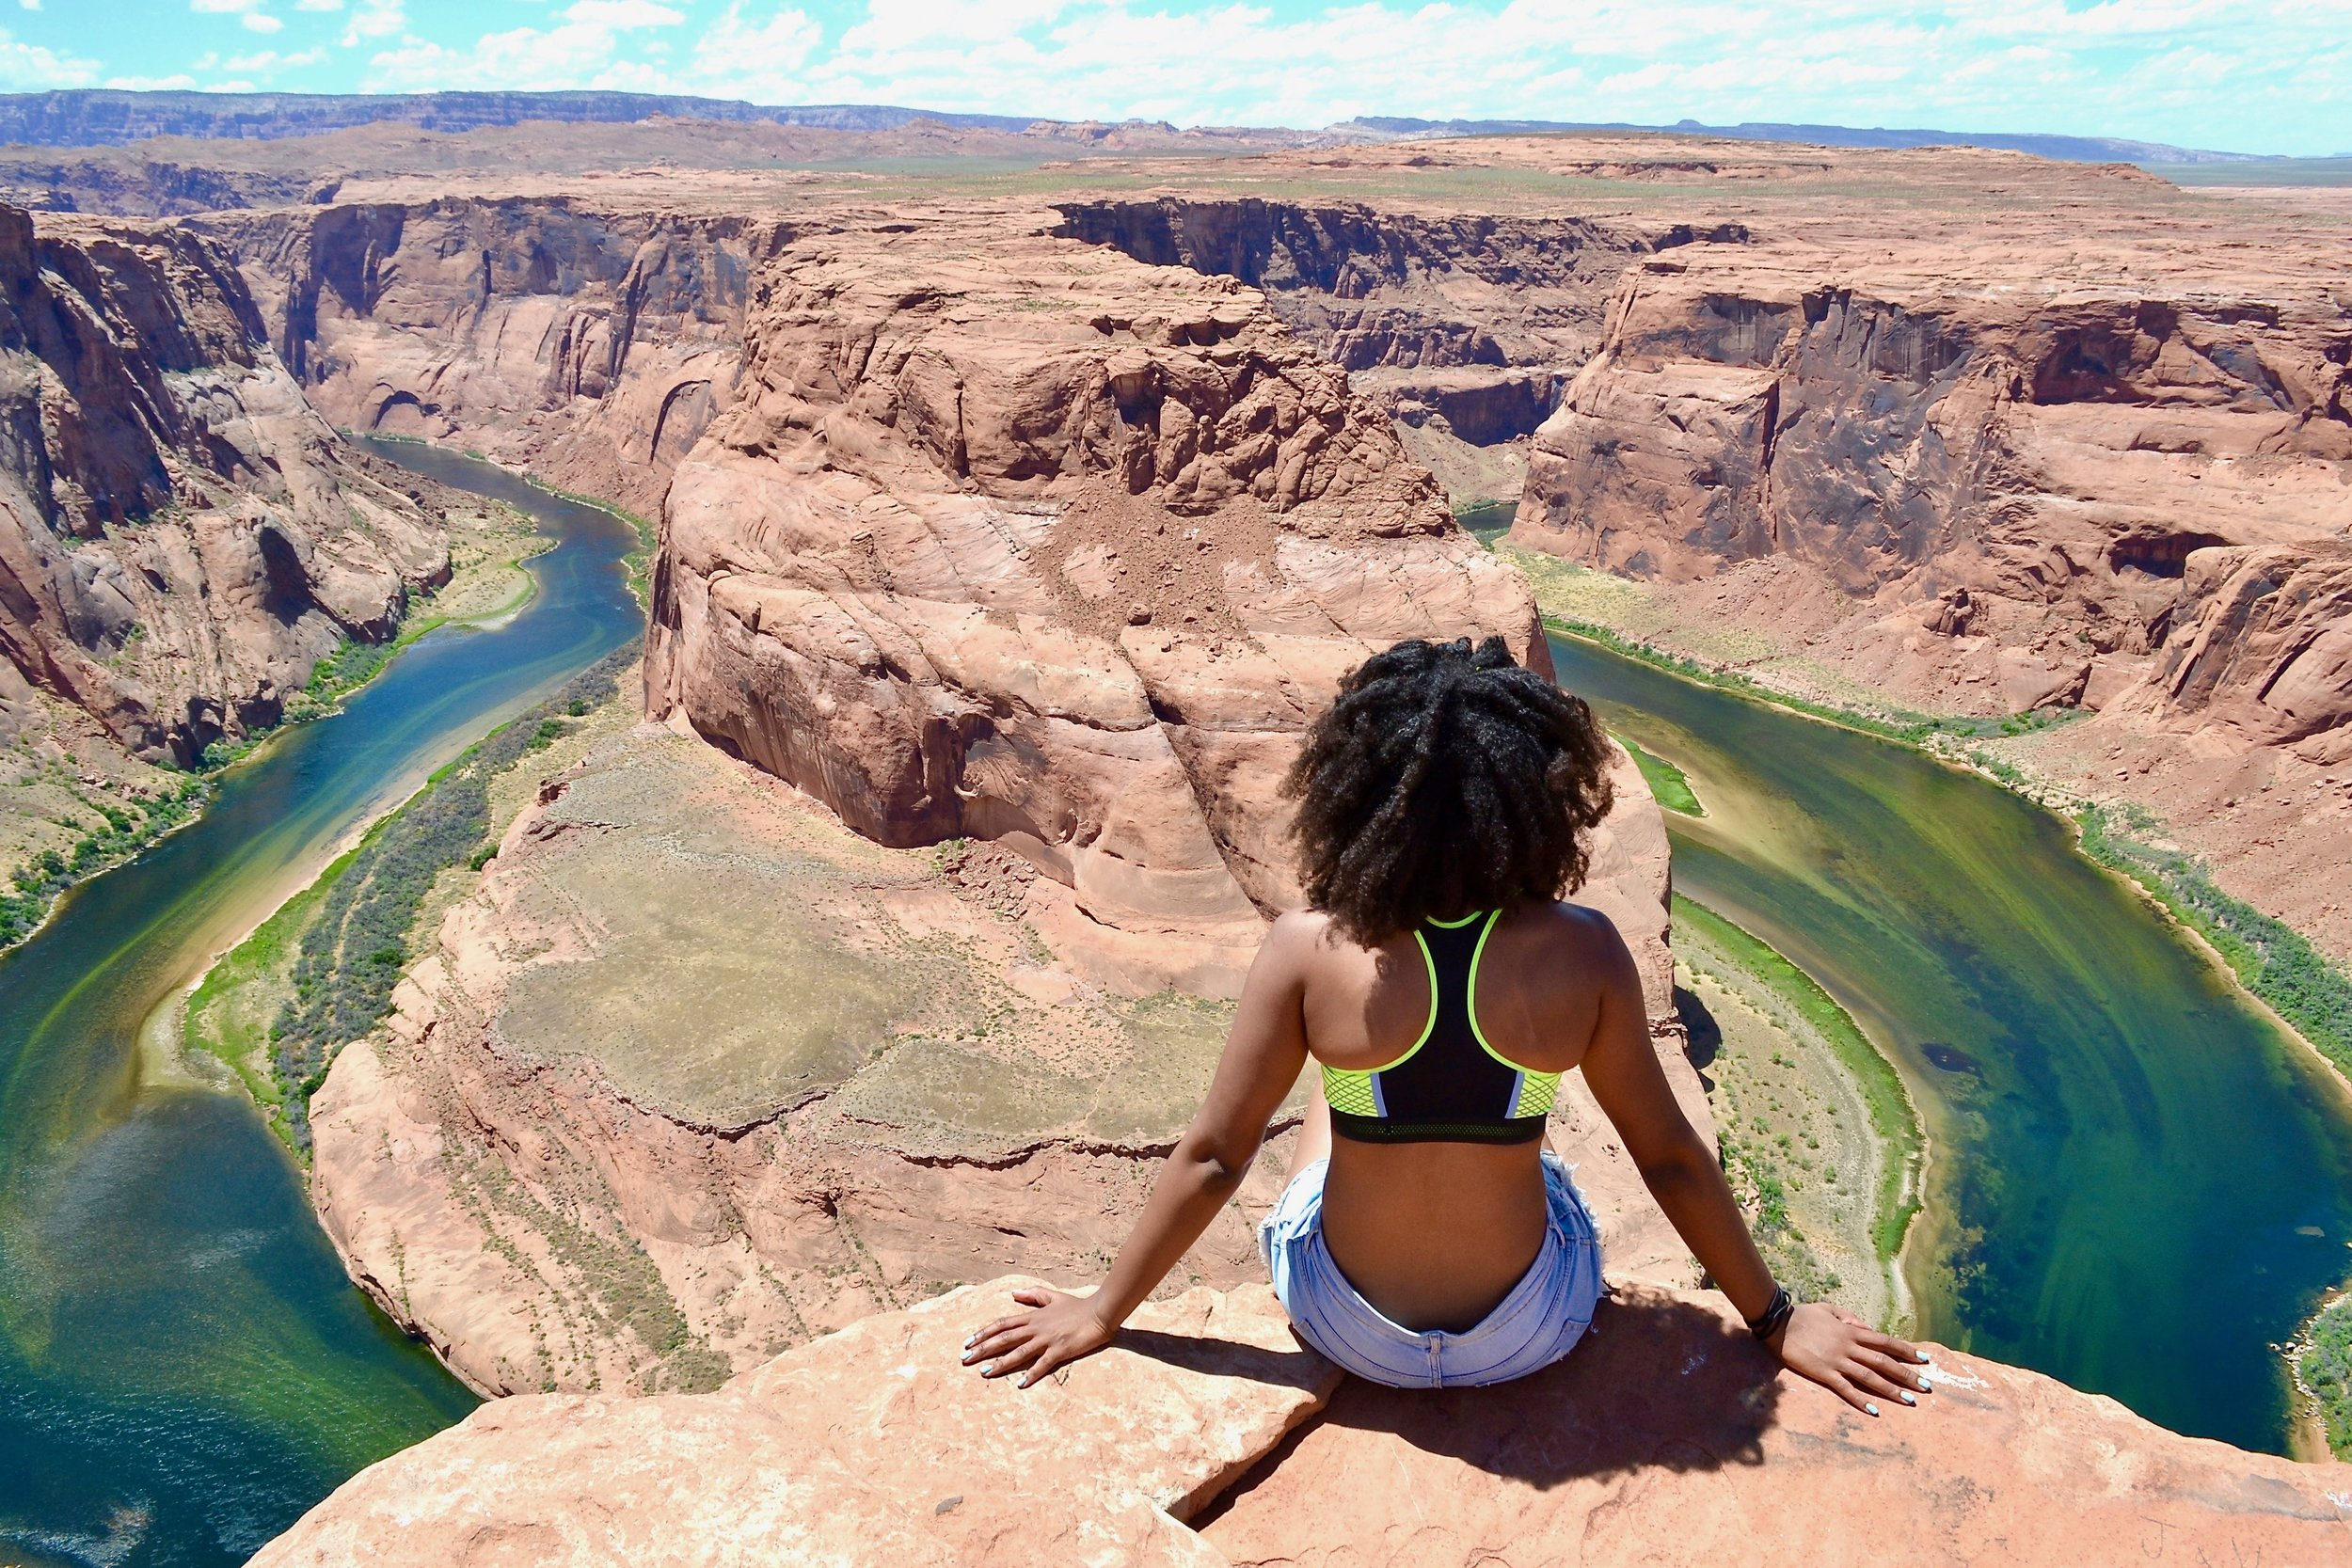 View from Horseshoe Bend in Arizona.